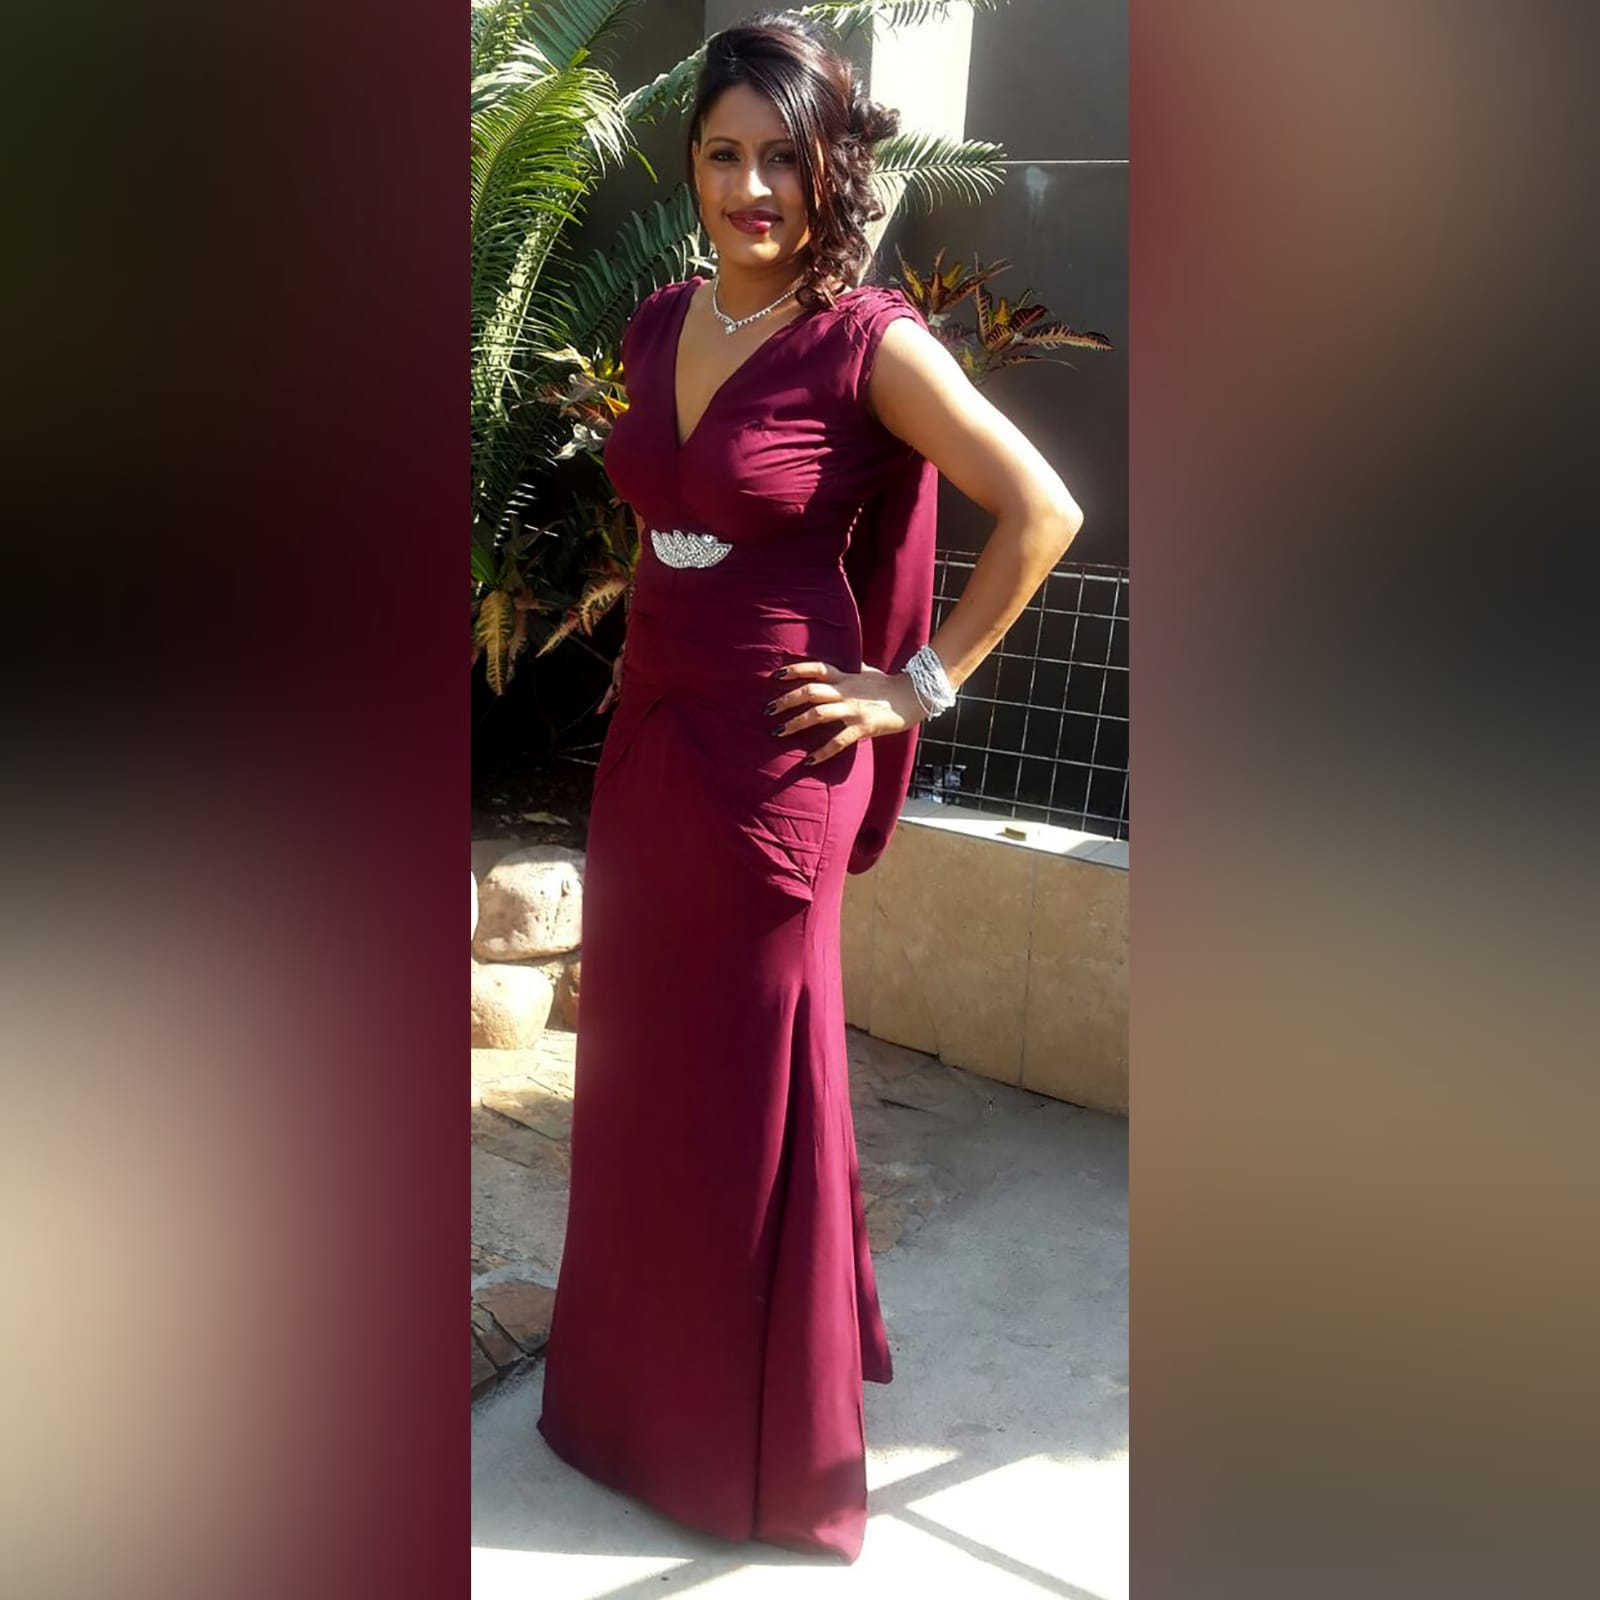 Soft mermaid maroon maid of honour dress 1 soft mermaid, maroon, maid of honour dress. With an open back. V neckline. With gathered shoulder and pleated tummy panel effect. With a detachable shoulder piece. Added silver detailing.